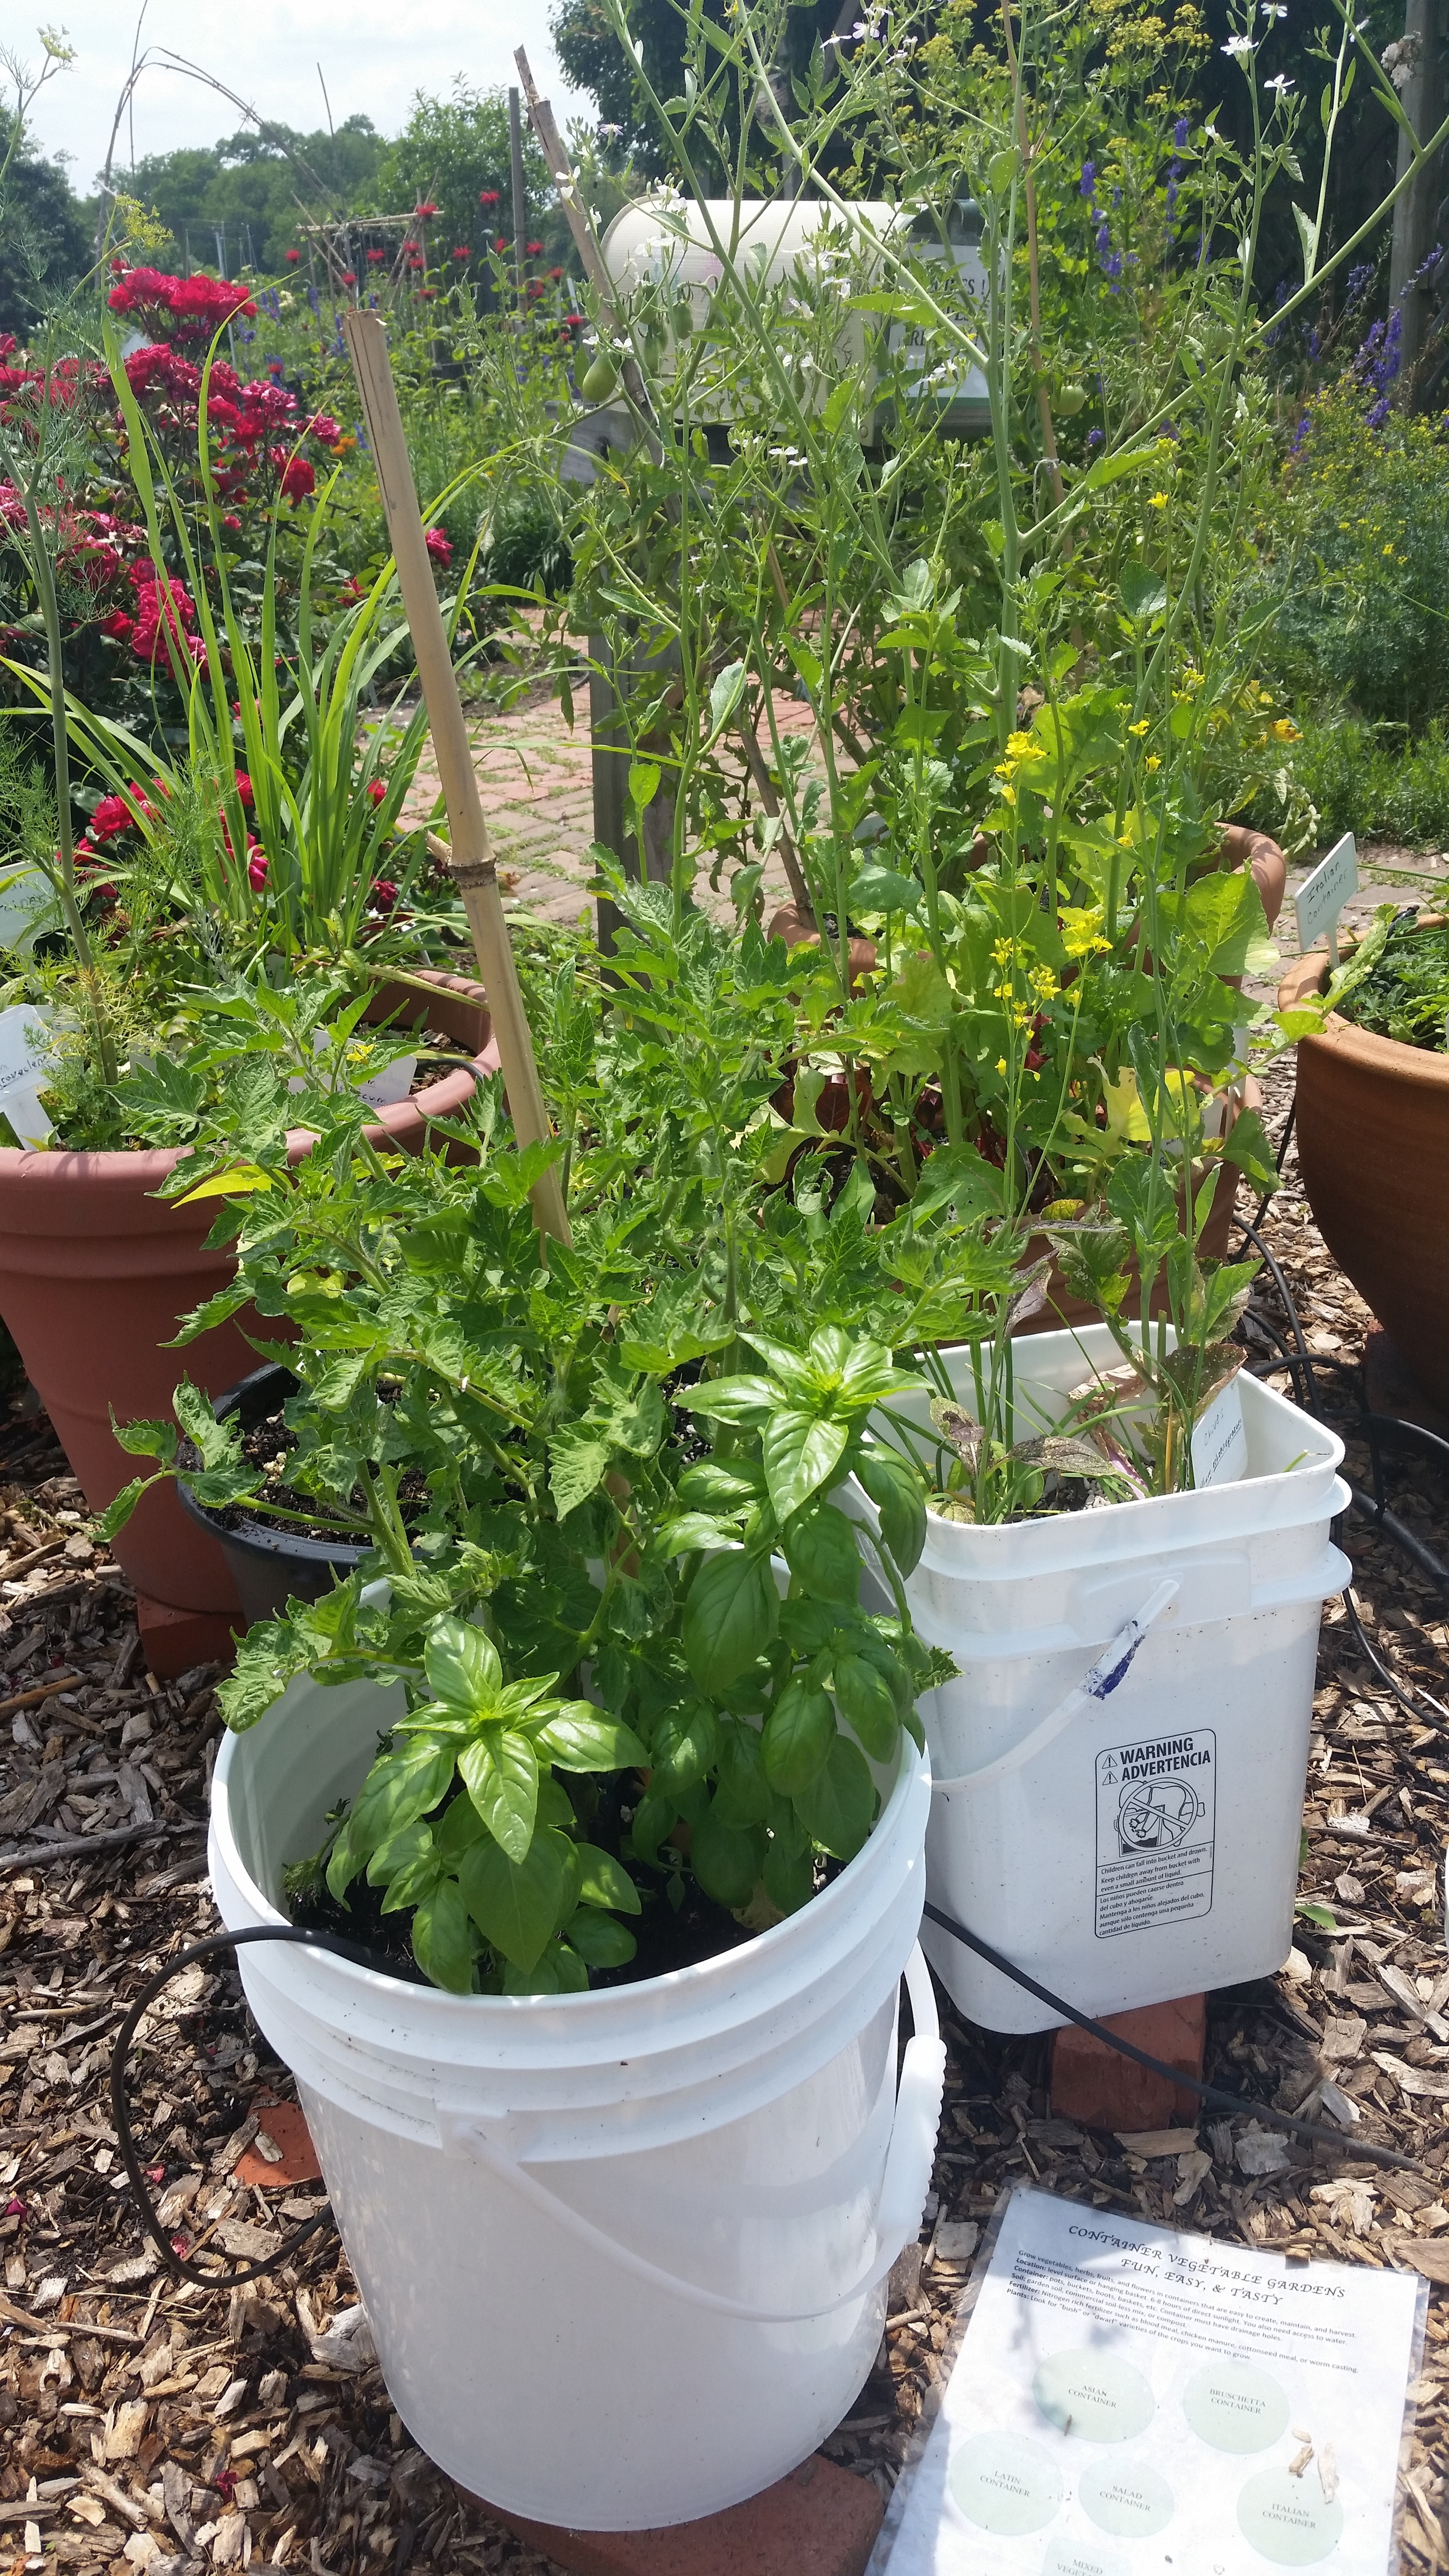 Even with no more than recycled containers you can create a patio or balcony garden. Be sure the recycled containers are safe to use as food growing containers.